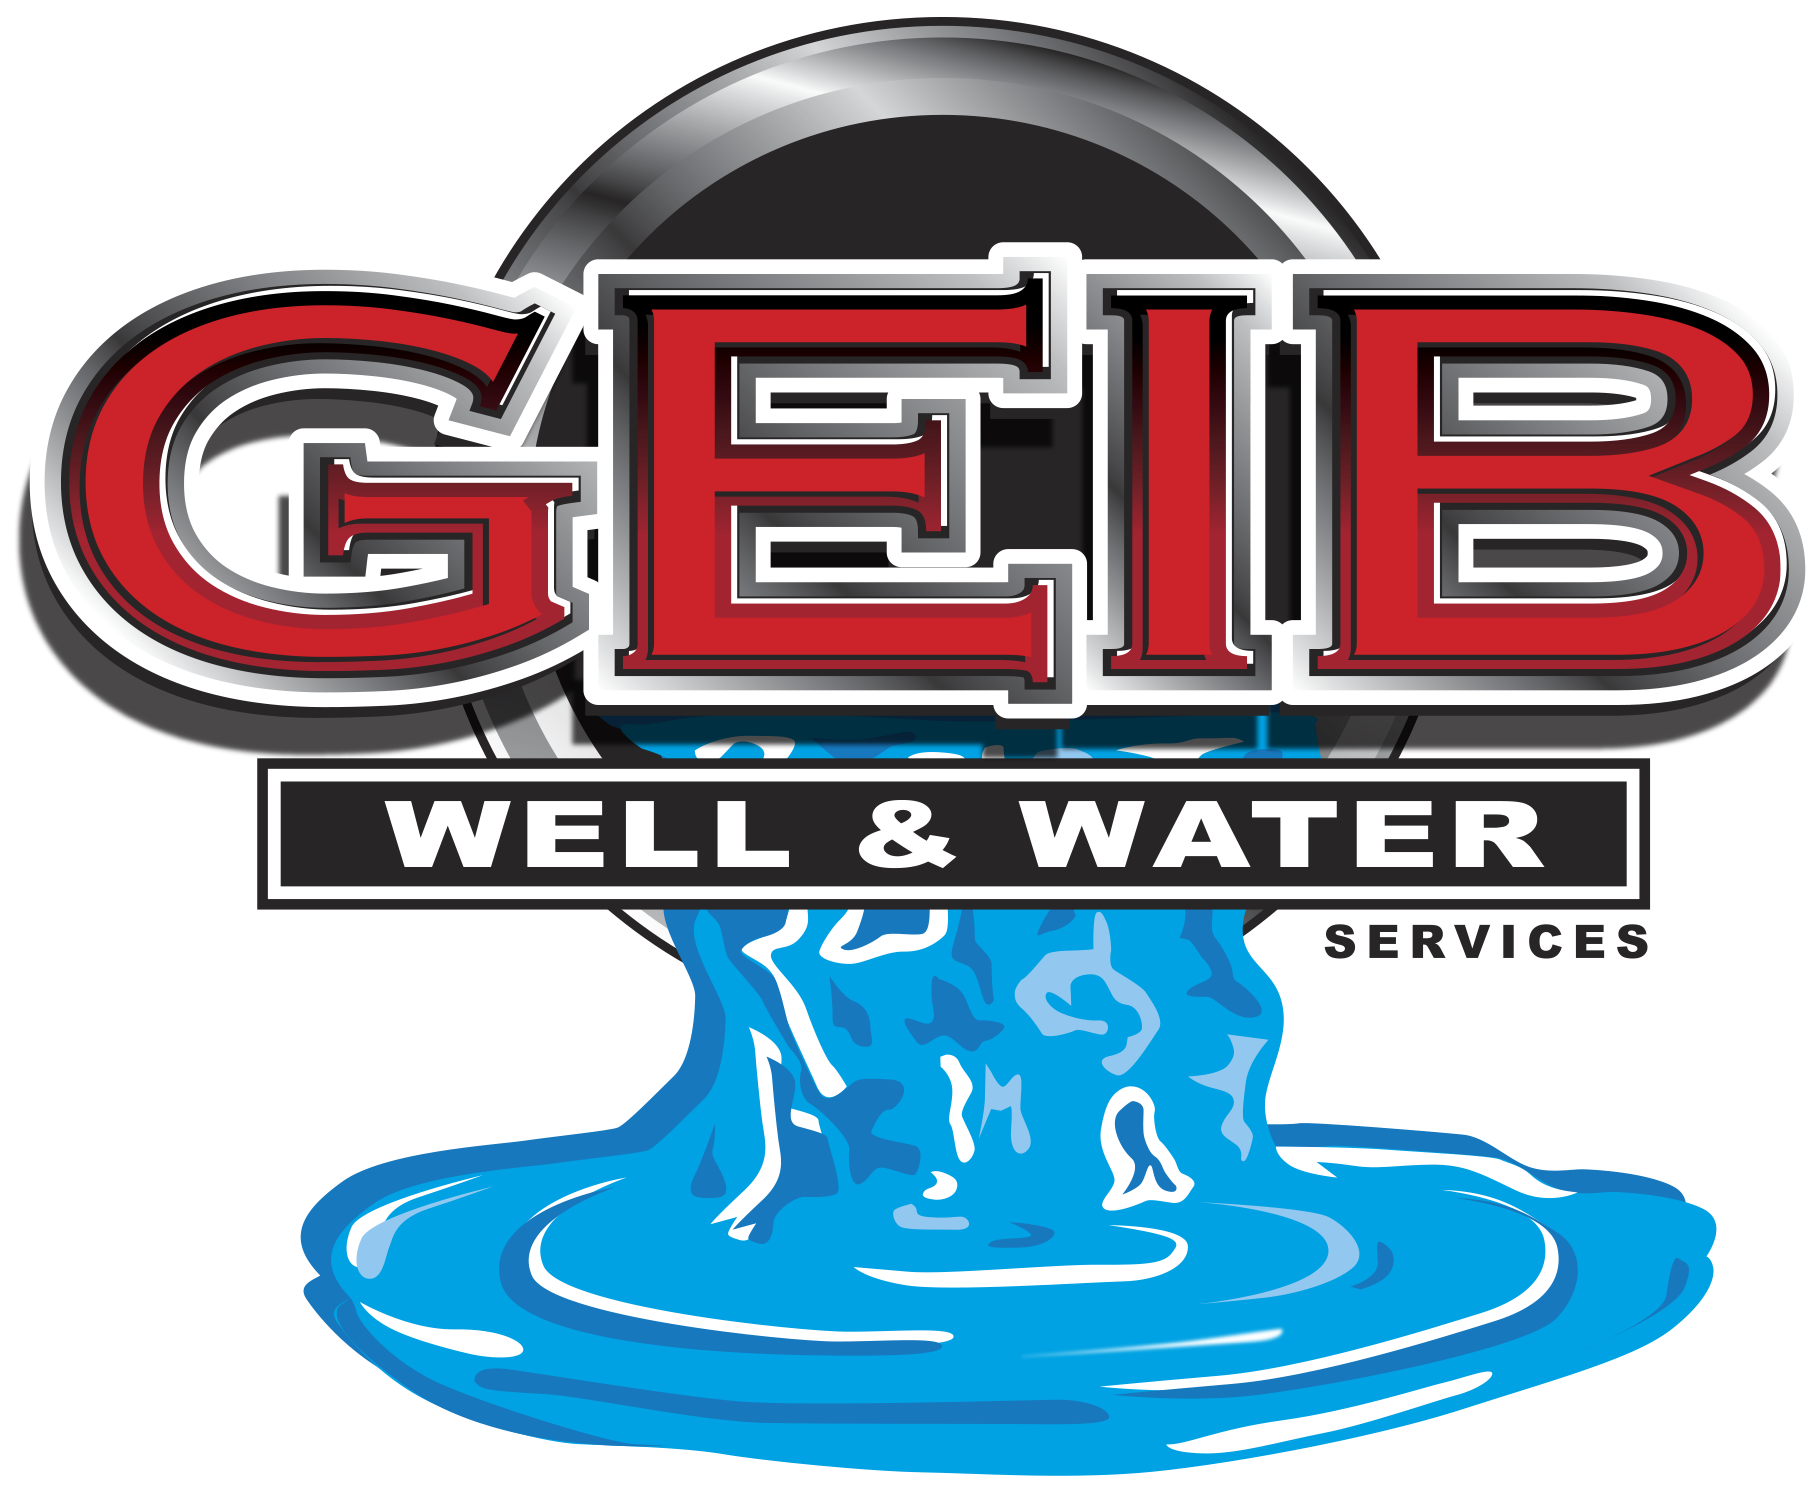 Geib Well & Water Services